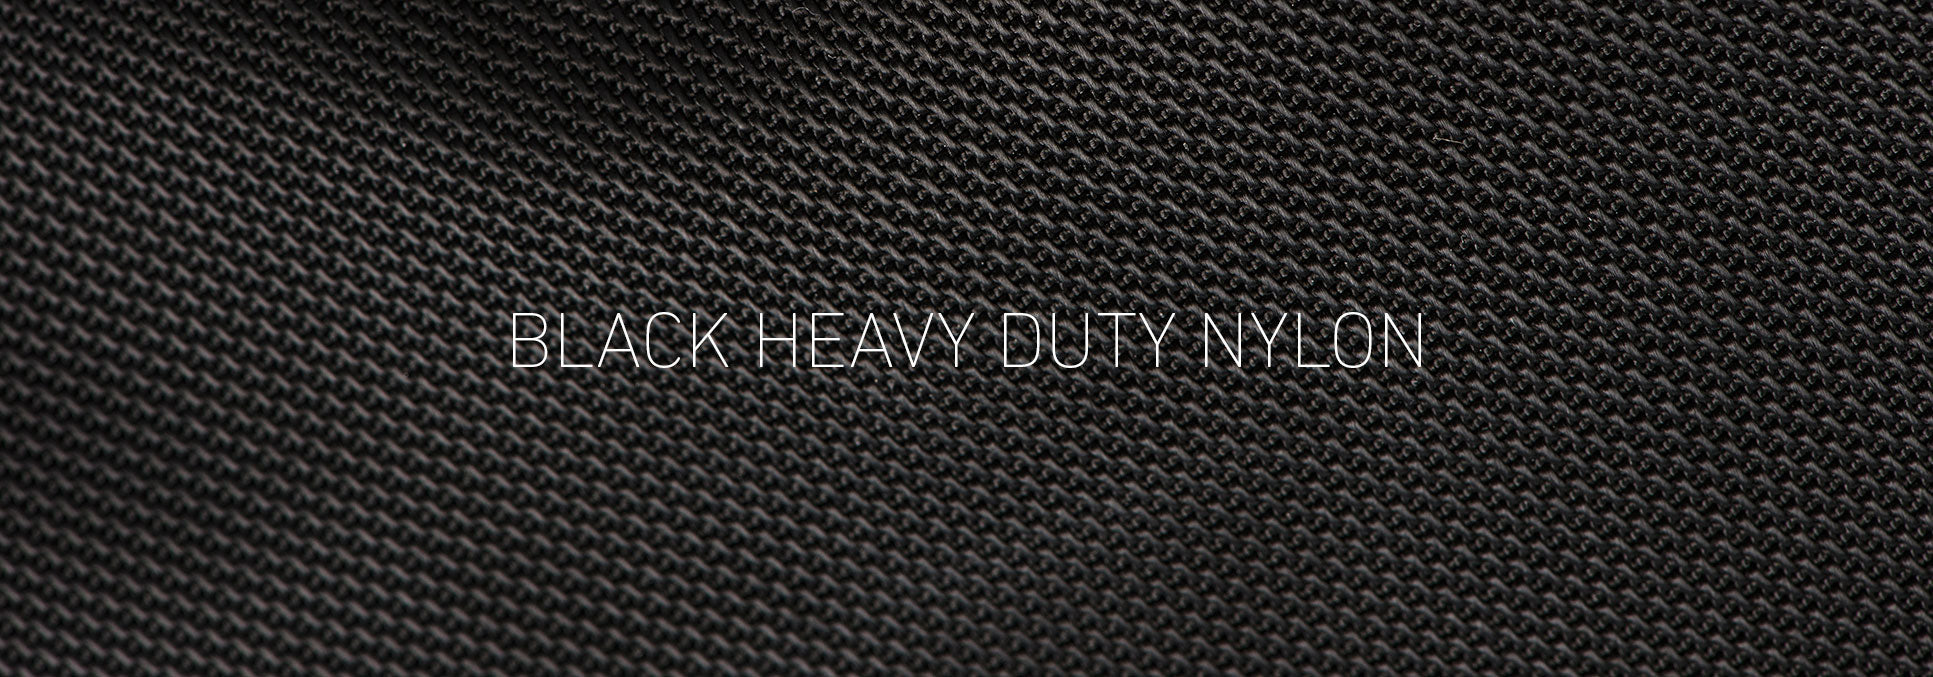 Black heavy duty nylon